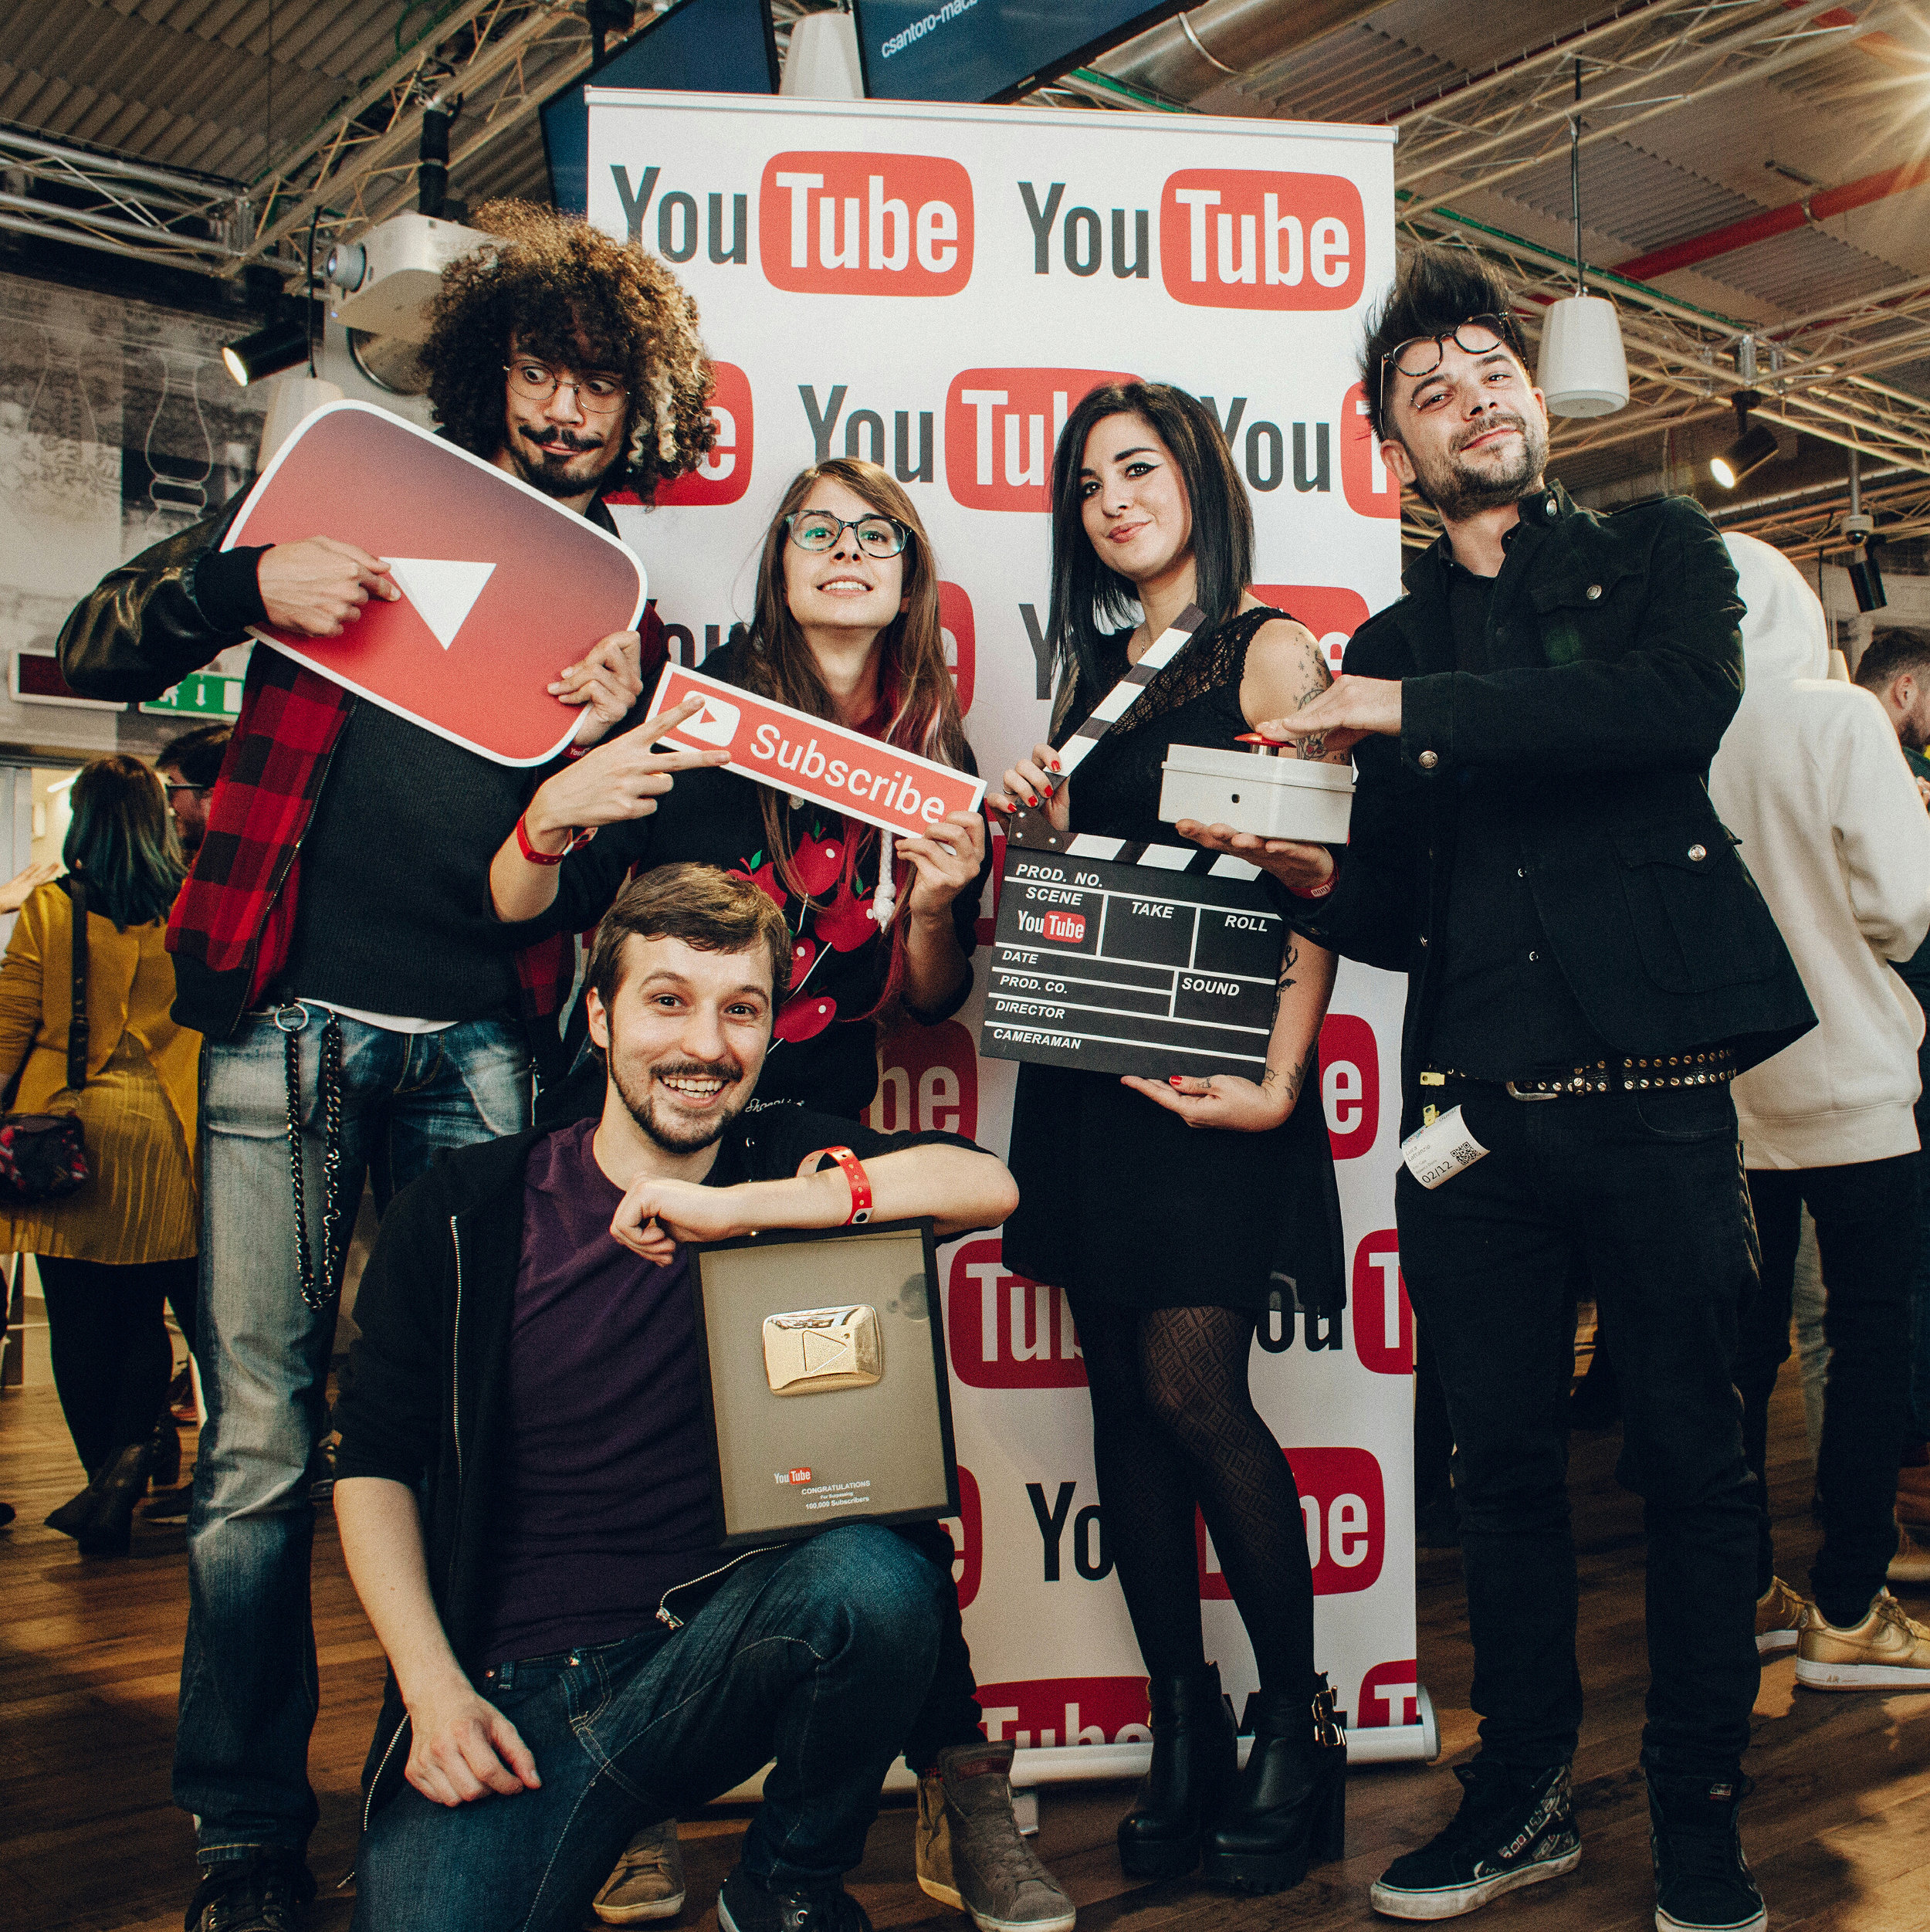 Youtube Christmas Party, Elia Bombardelli con Fraffrog, RichardHTT e Scherzi di Coppia